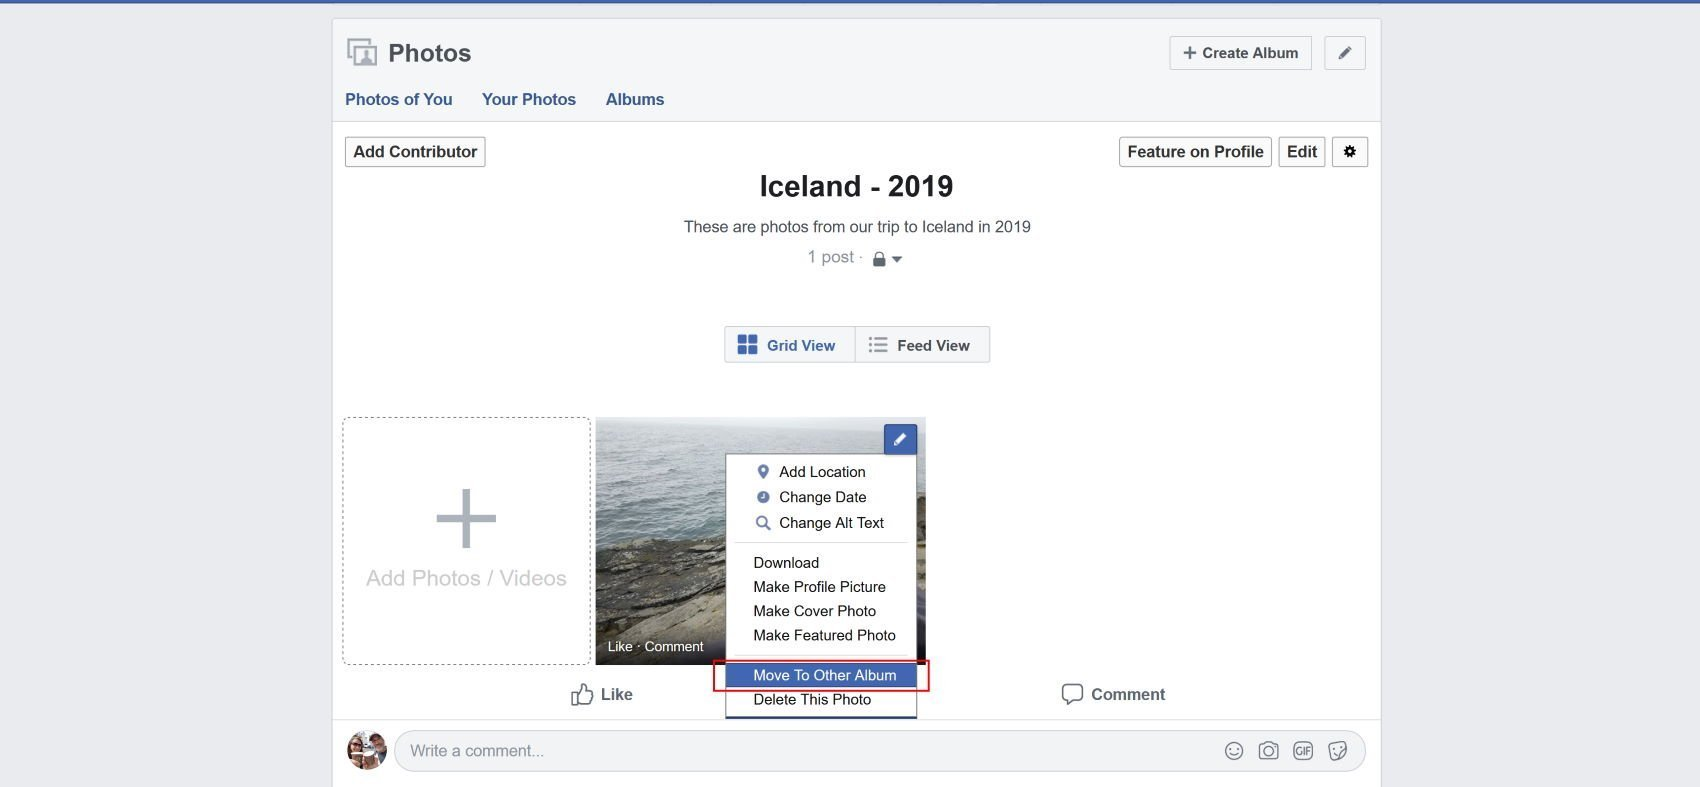 You can now move Facebook photo from one album to another